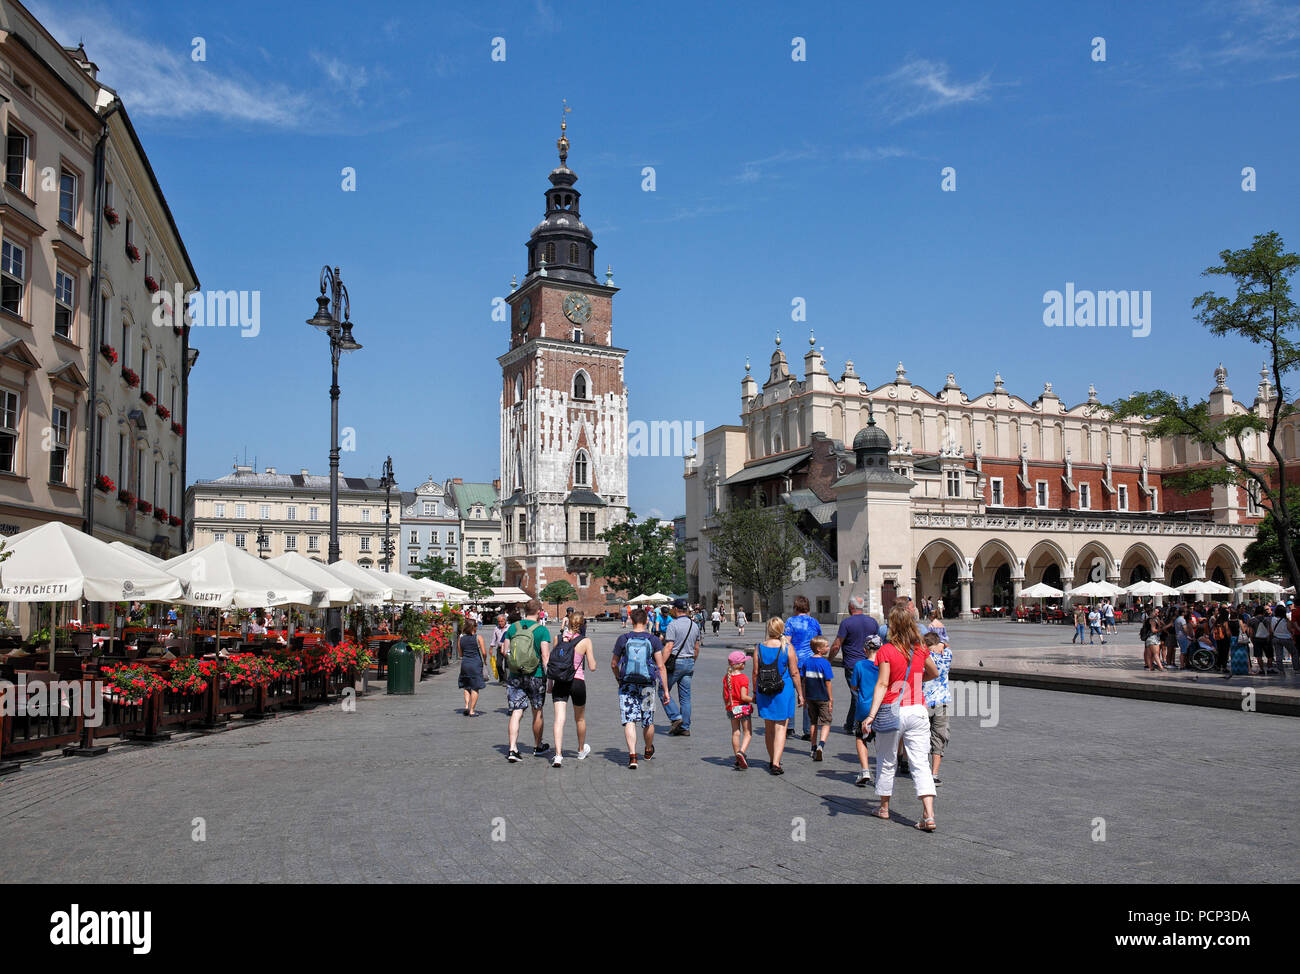 people infront of Cloth Hall. old town krakow, lesser poland, poland, europe - Stock Image